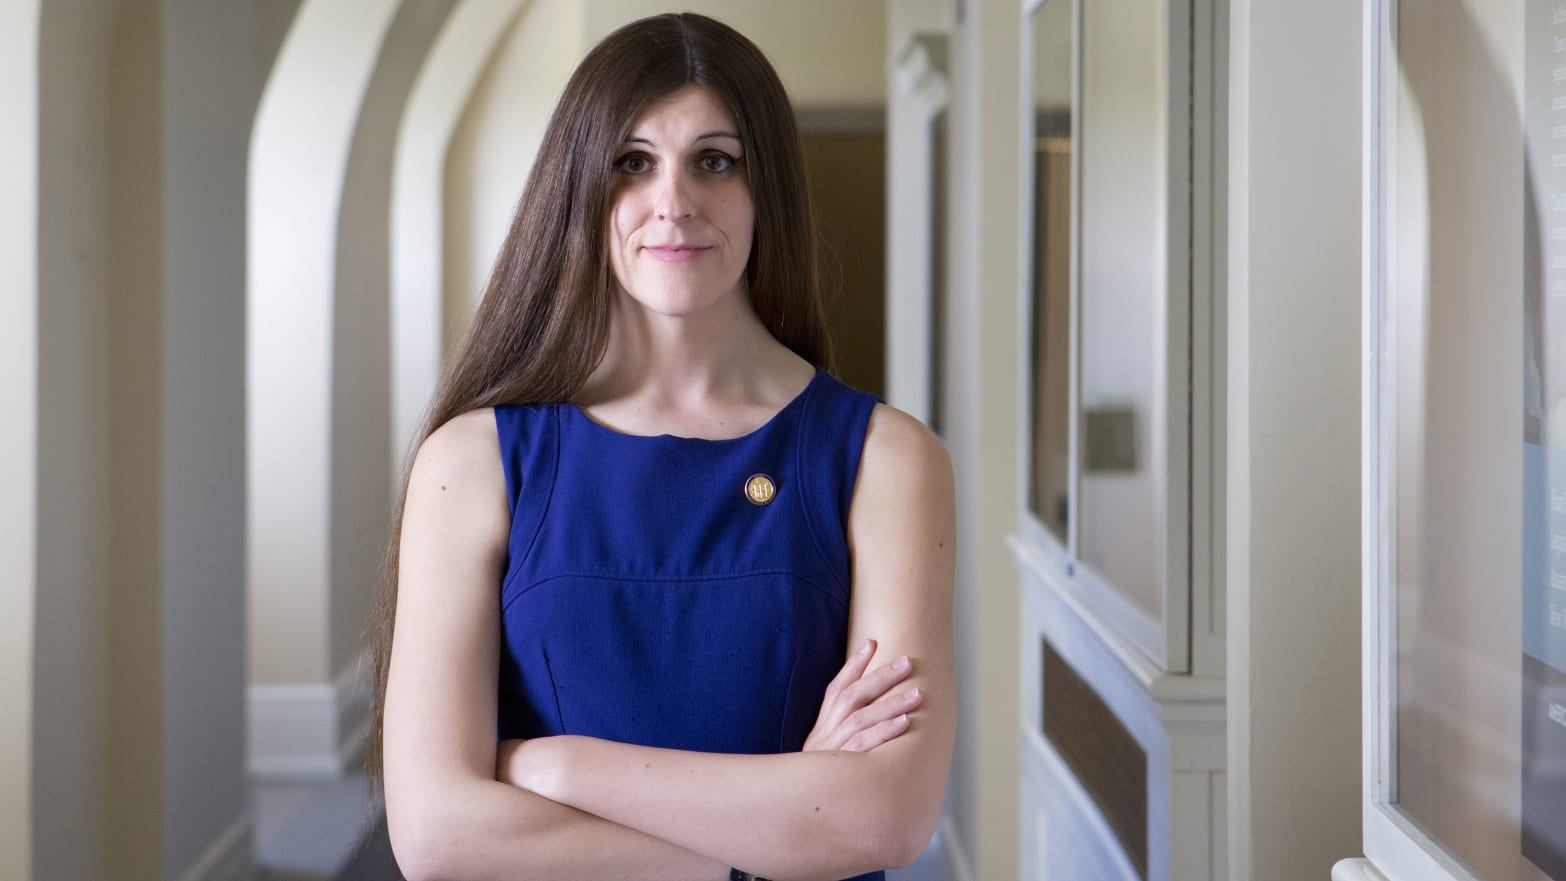 Danica Roem, Trans History Maker, Fights Another Anti-LGBT Candidate—and Their Donors—in Virginia